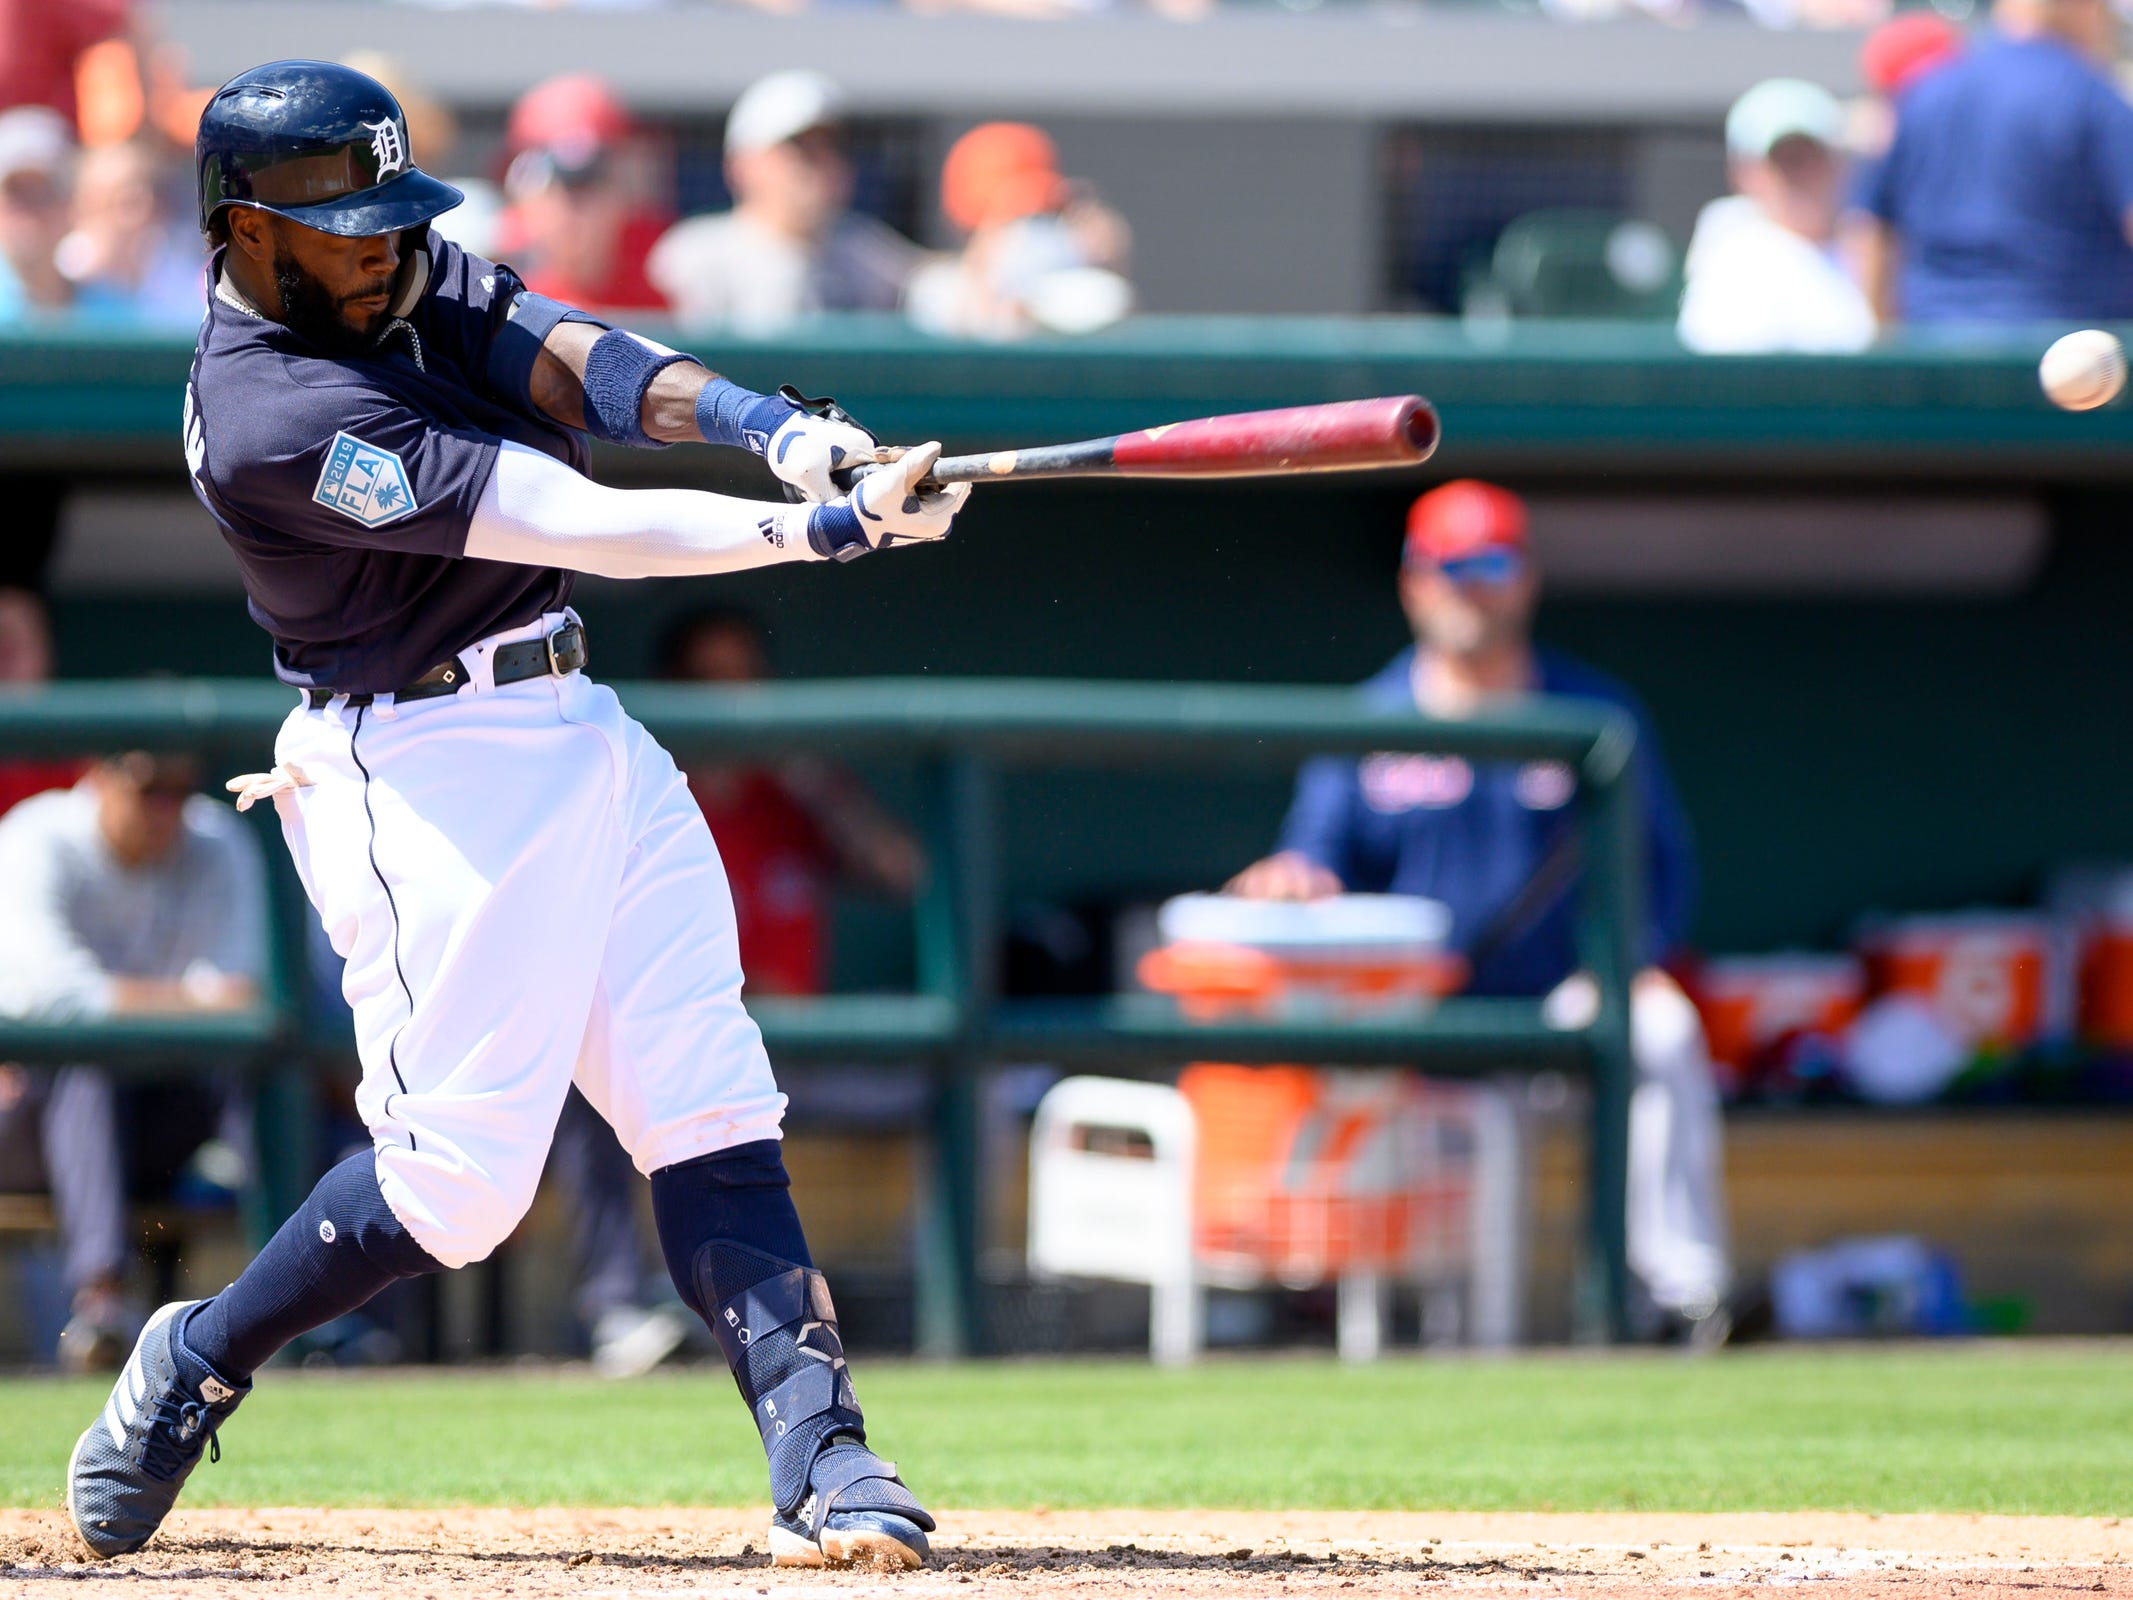 Detroit Tigers infielder Josh Harrison singles to left field during the fifth inning against the Boston Red Sox at Joker Marchant Stadium in Lakeland, Fla. on March 14, 2019.